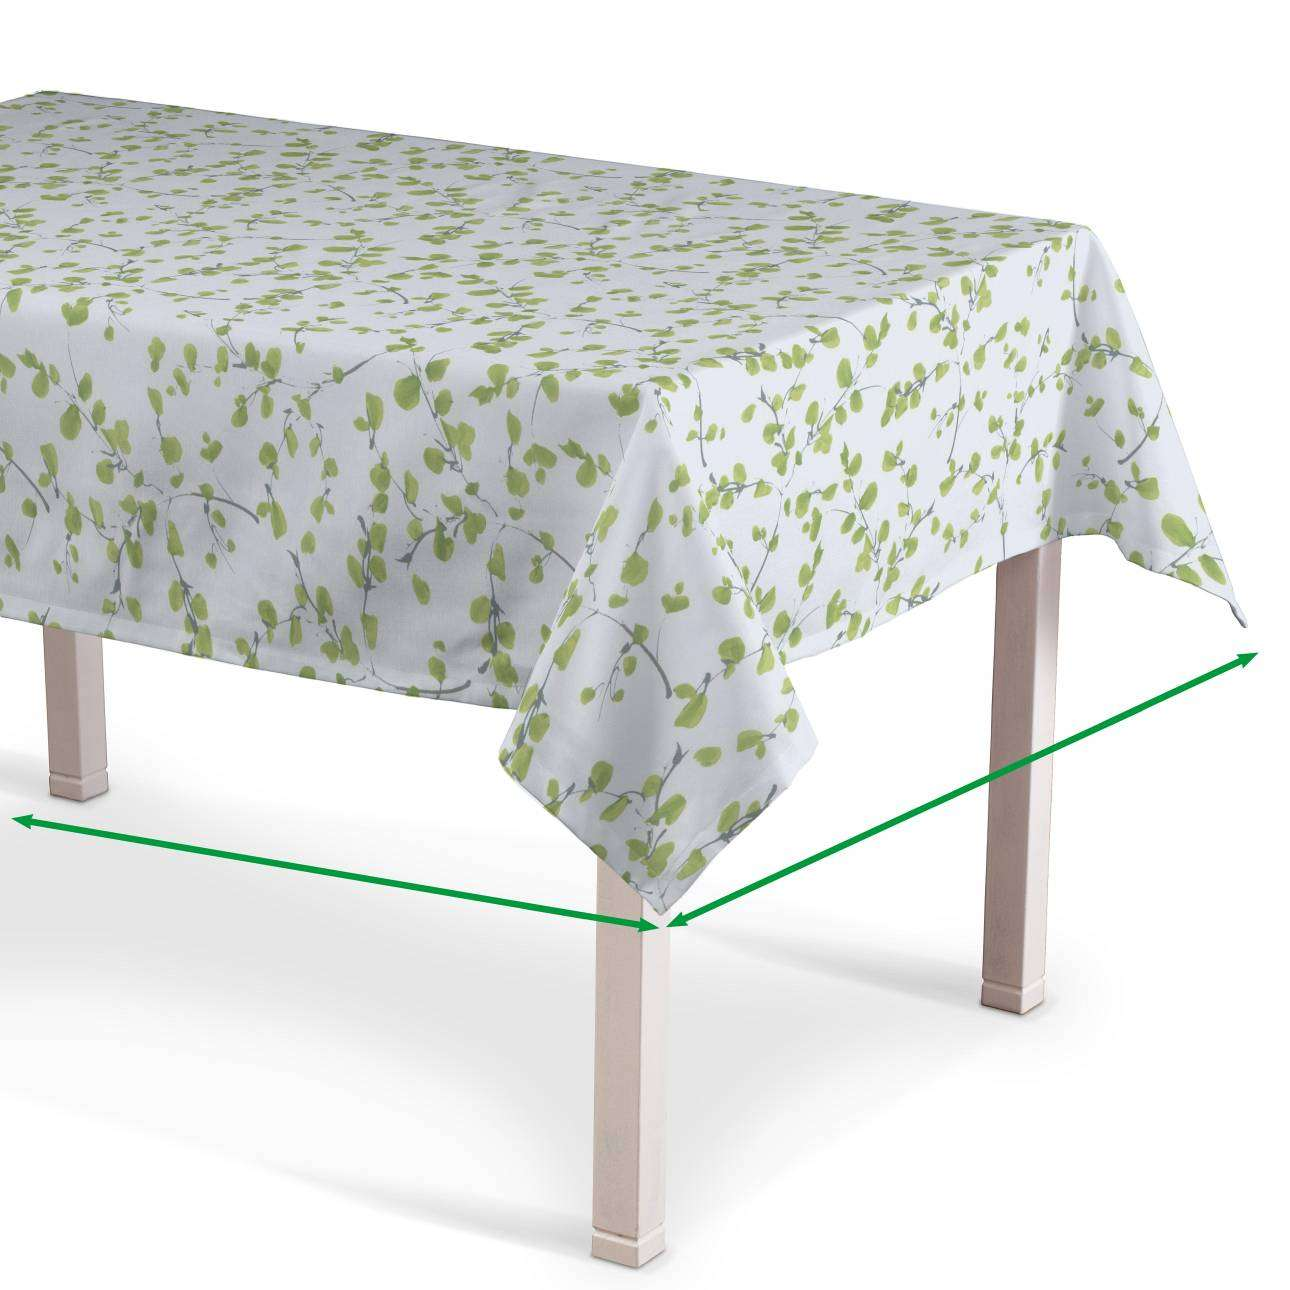 Rectangular tablecloth in collection Aquarelle, fabric: 140-76